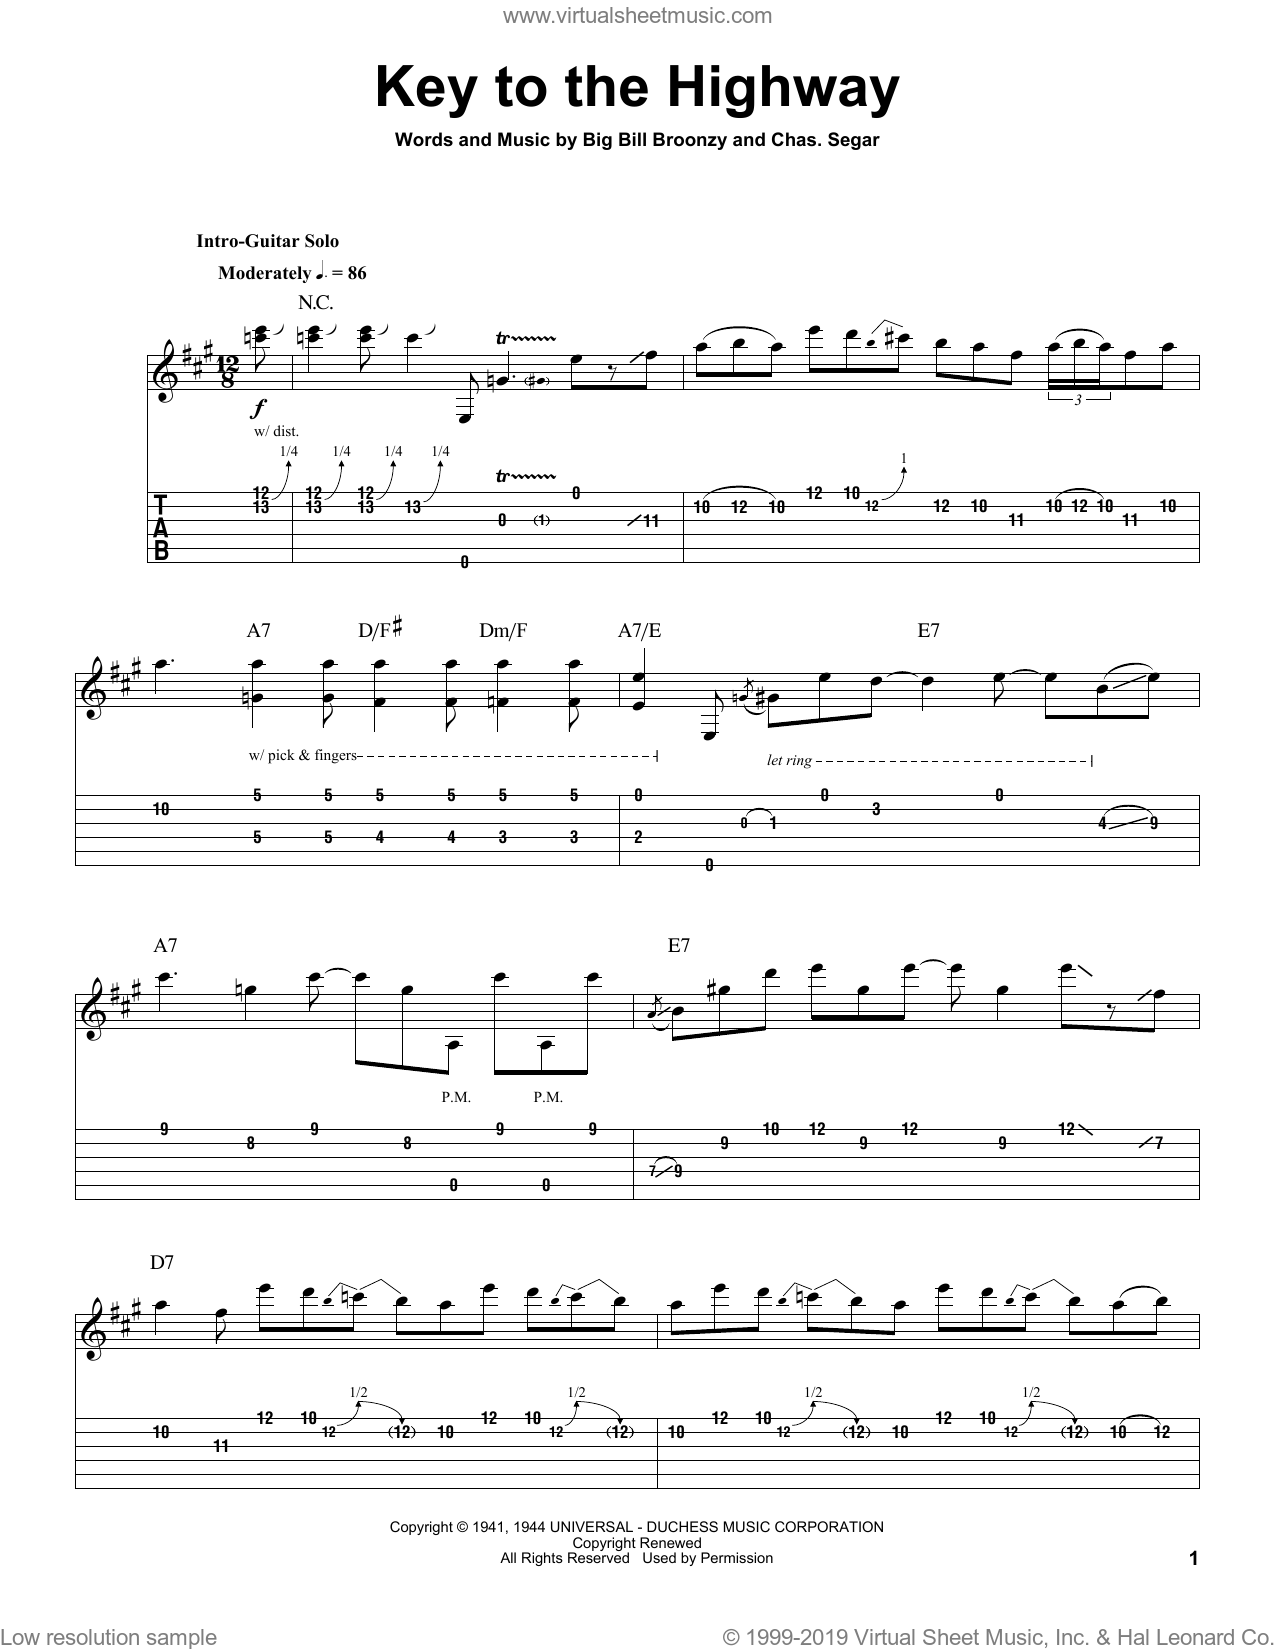 Key To The Highway sheet music for guitar (tablature, play-along) by Charles Segar, Eric Clapton and Big Bill Broonzy. Score Image Preview.